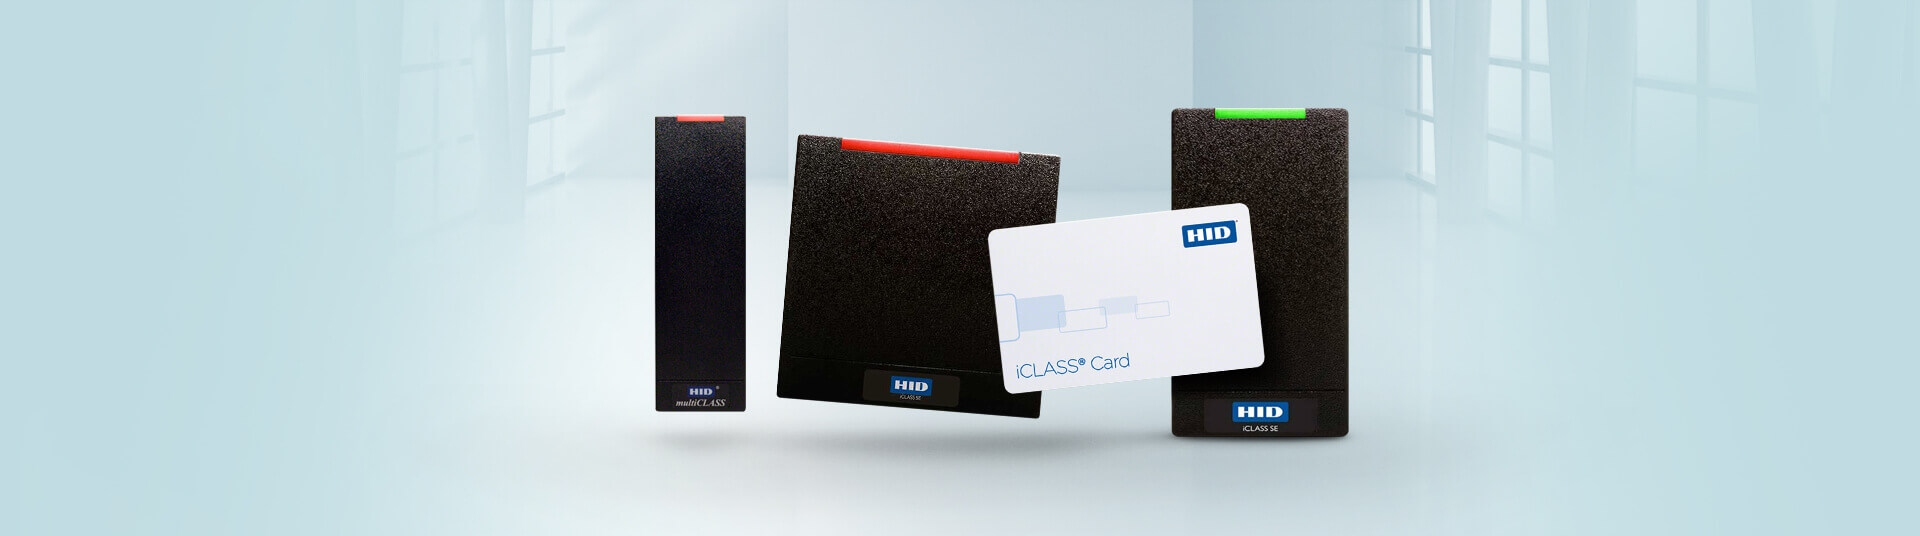 HID iCLASS Smart Card Readers